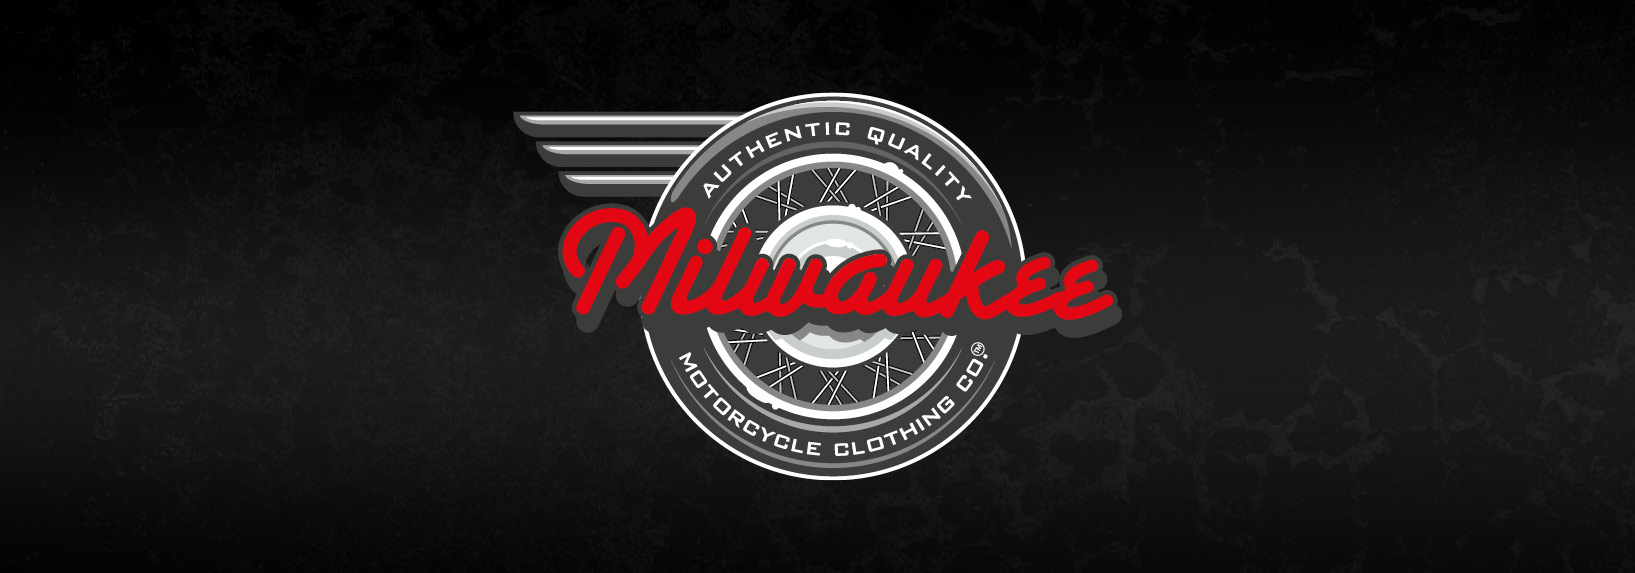 Milwaukee Motorcycle Clothing Company Gold Wing 1000 Parts & Accessories